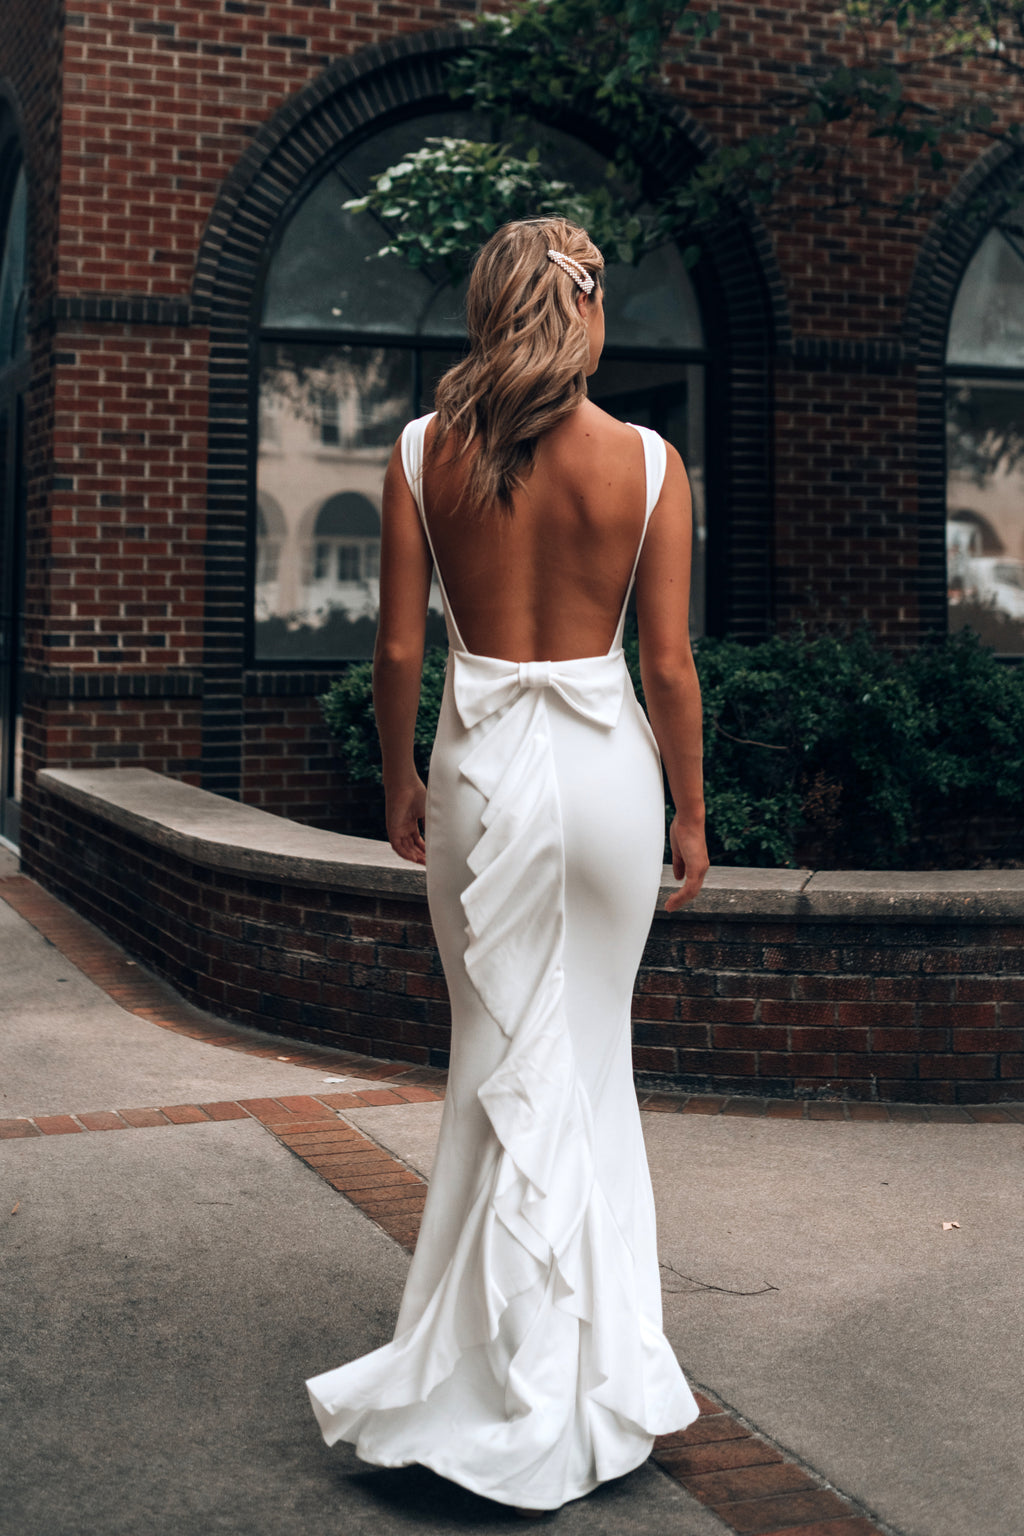 Follow Your Heart Gown (Ivory) PRE-ORDER Ships End Of August